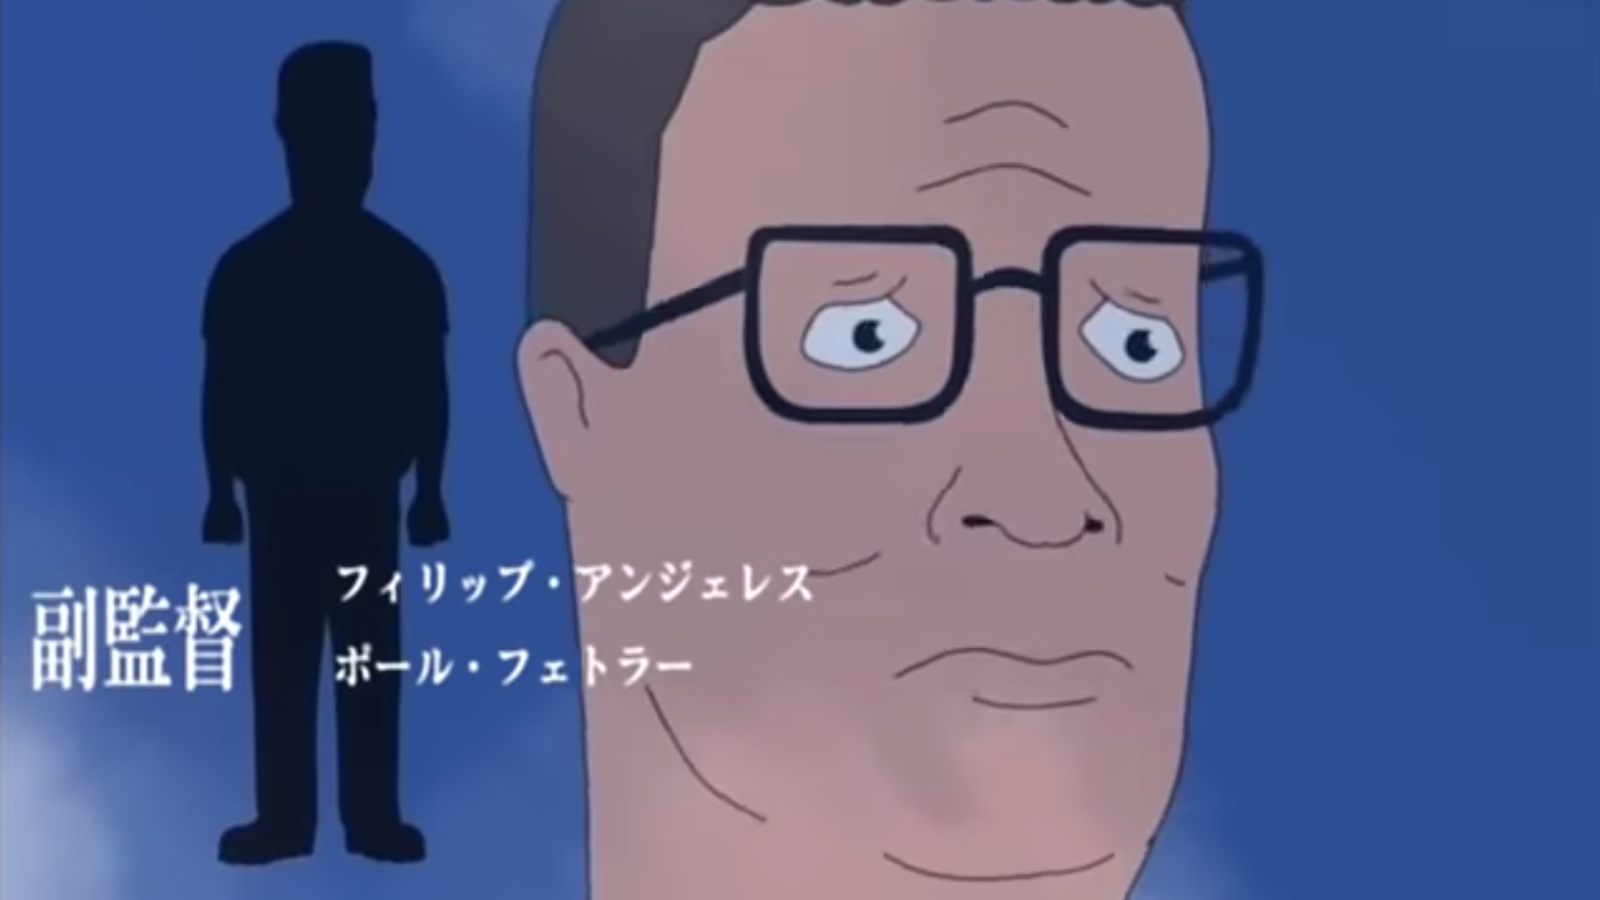 King Of The Hill meets Neon Genesis Evangelion in Propane